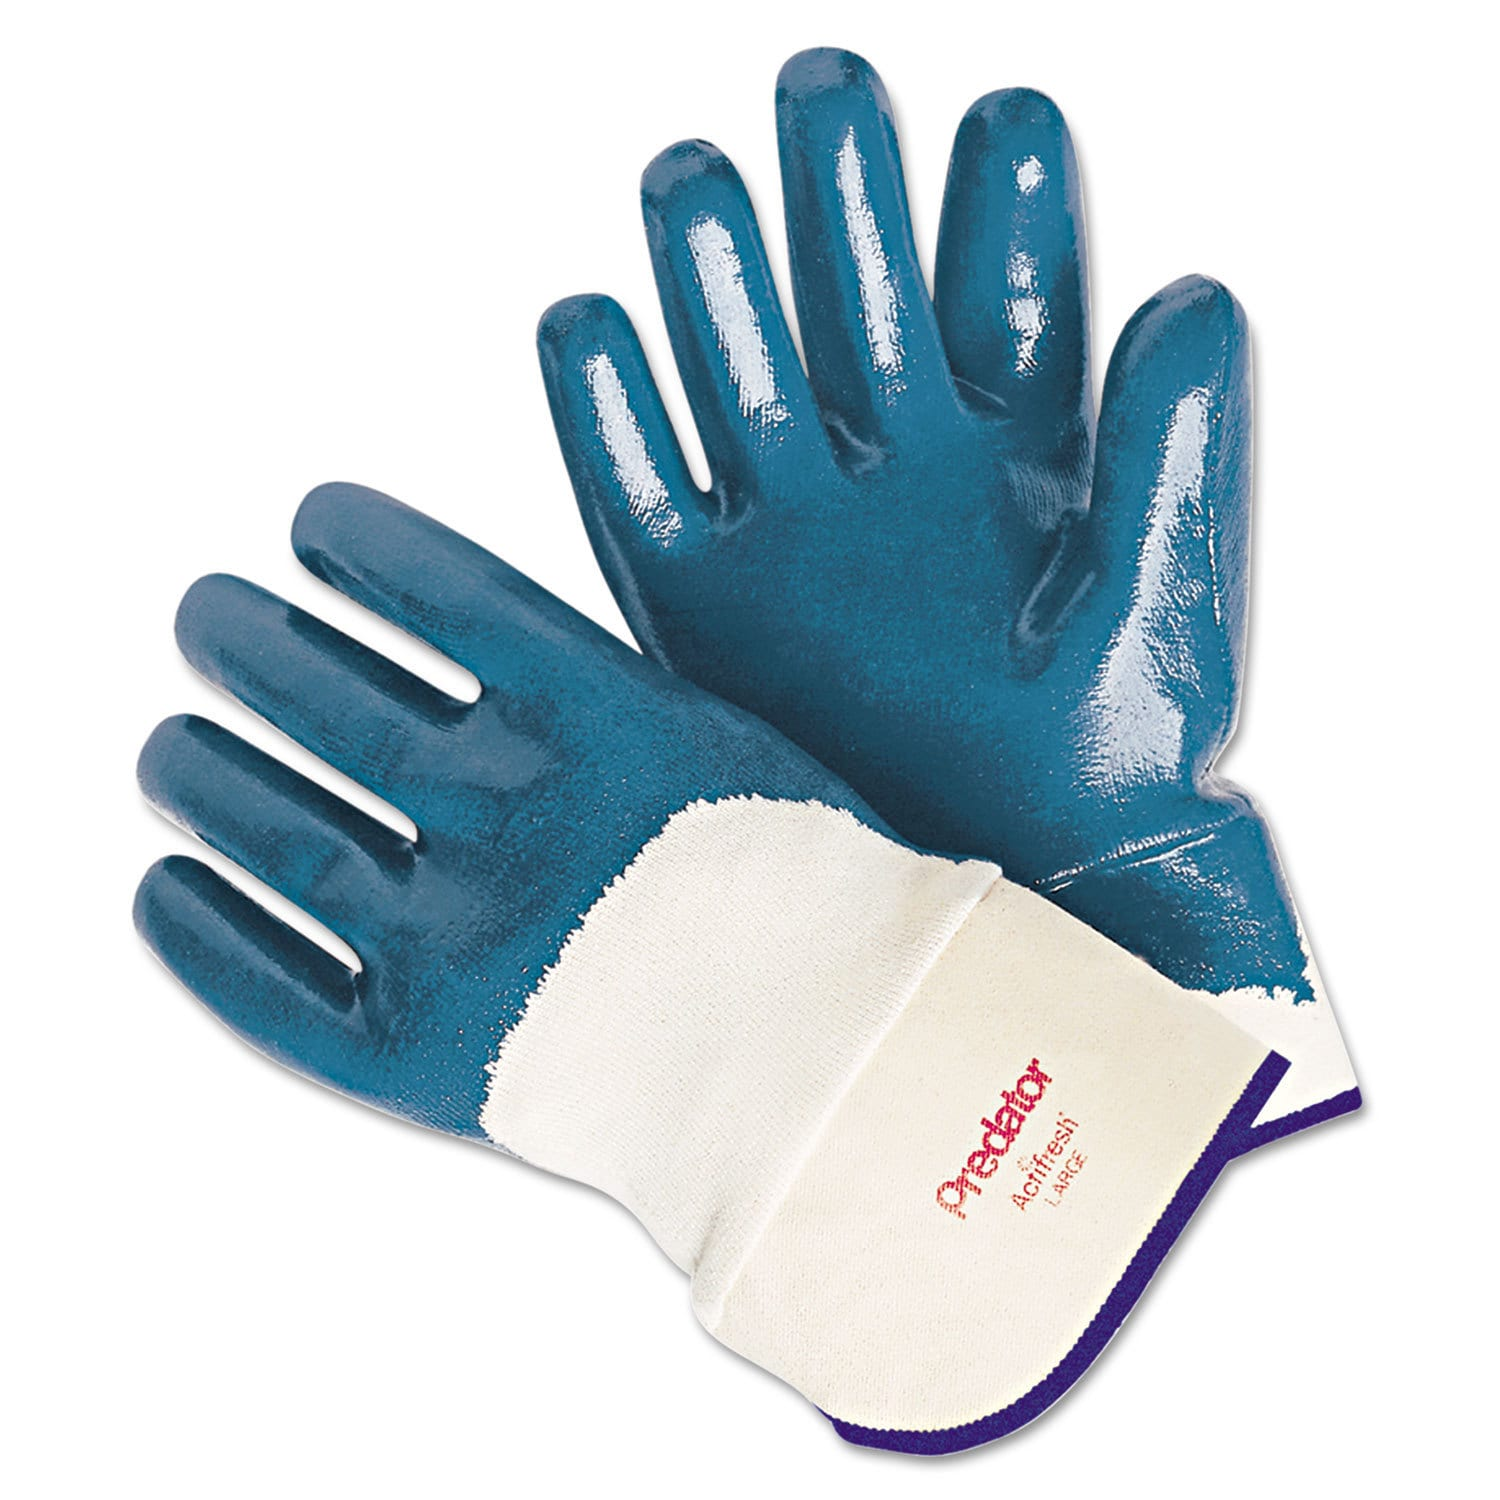 MEMPHIS Predator Nitrile Gloves Blue/White Large 12 Pairs...